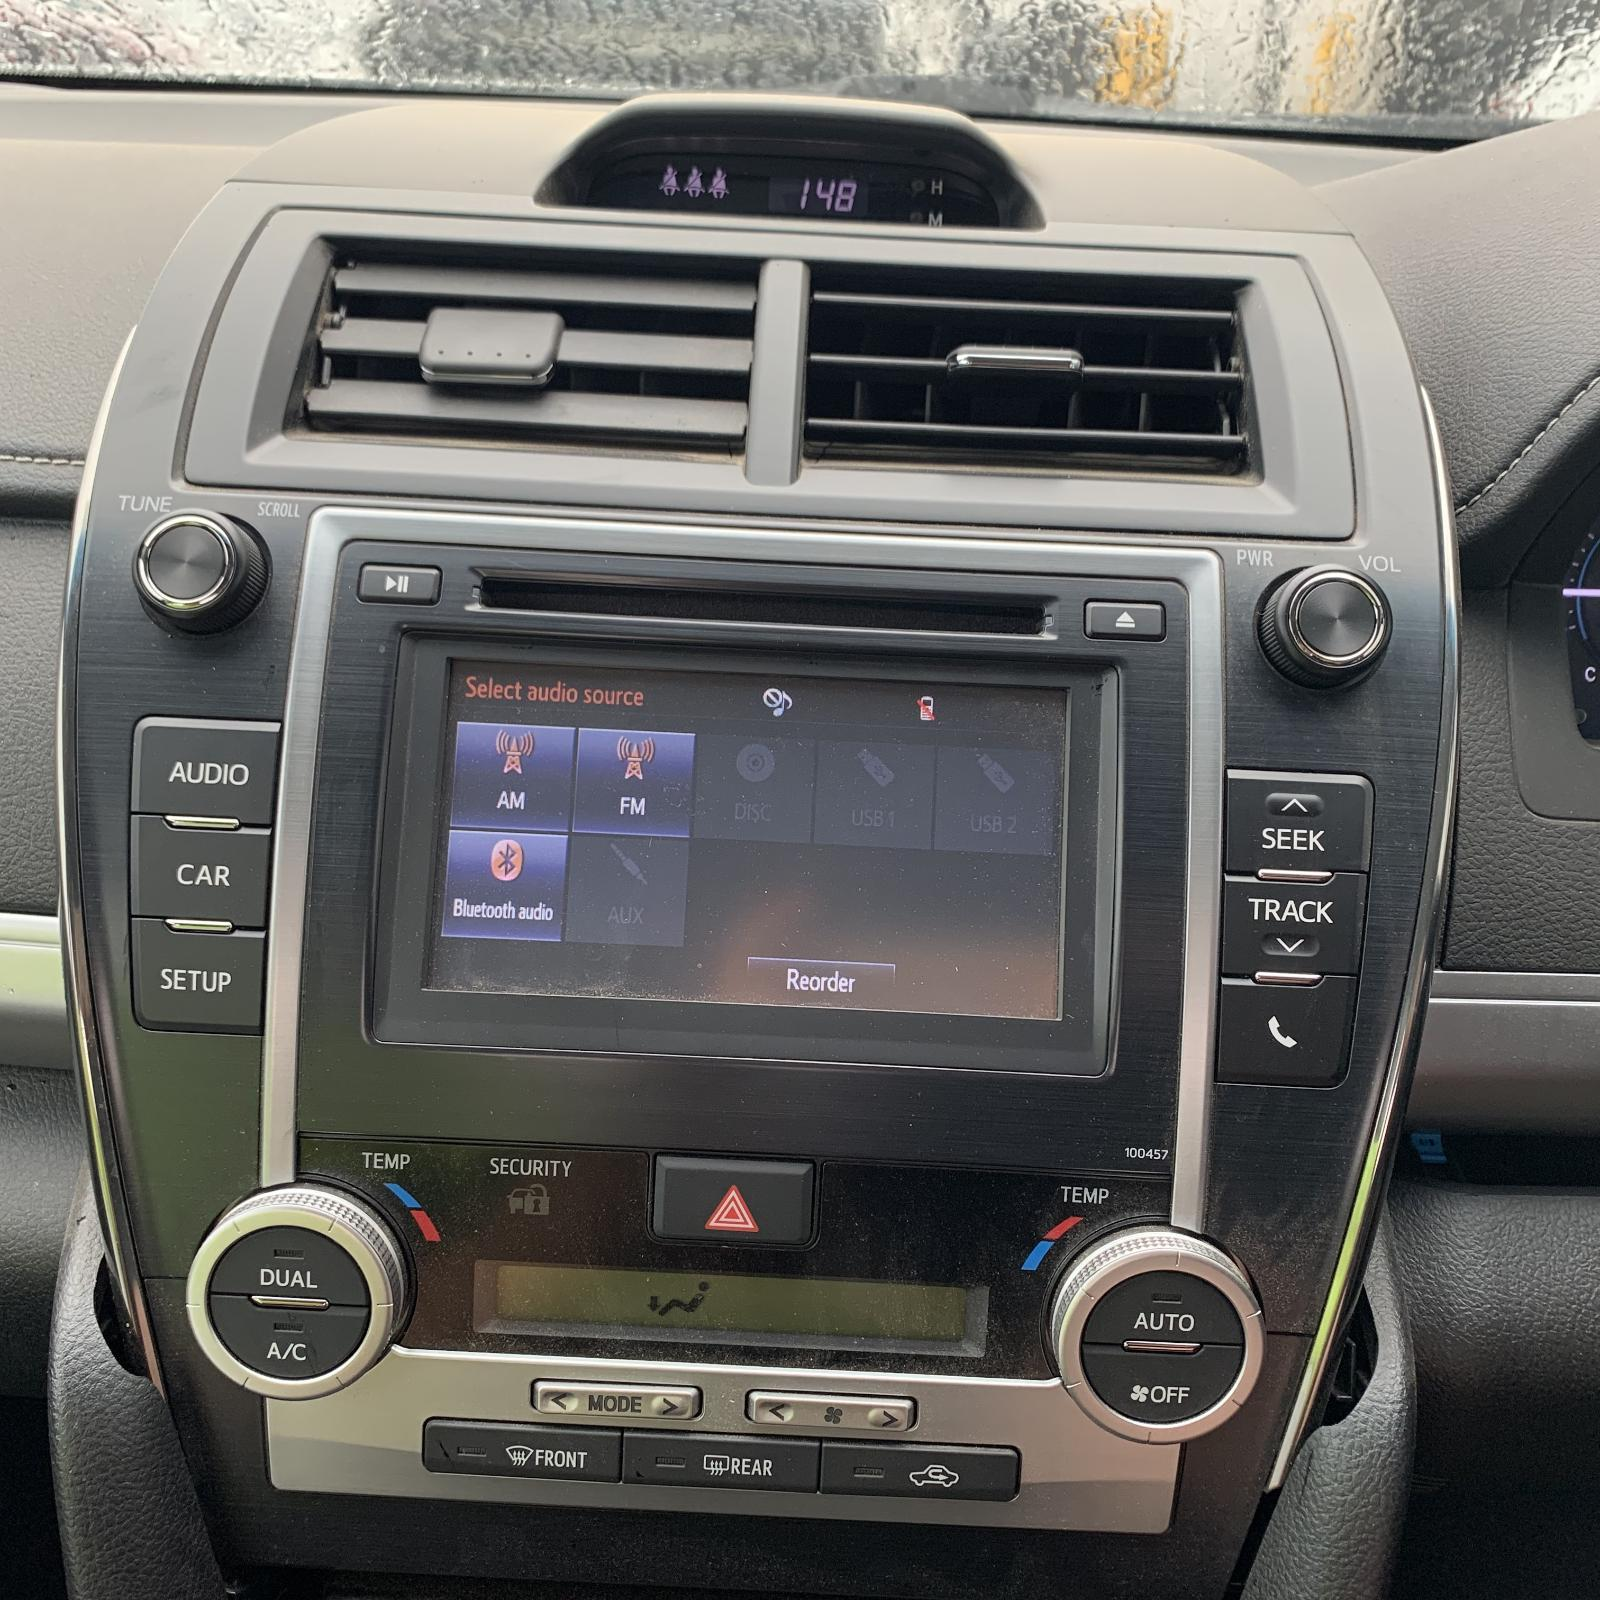 TOYOTA CAMRY, Radio/Cd/Dvd/Sat/Tv, CD PLAYER, TOUCH SCREEN, P/N ON FACE 100457, ACV50, 05/15-10/17